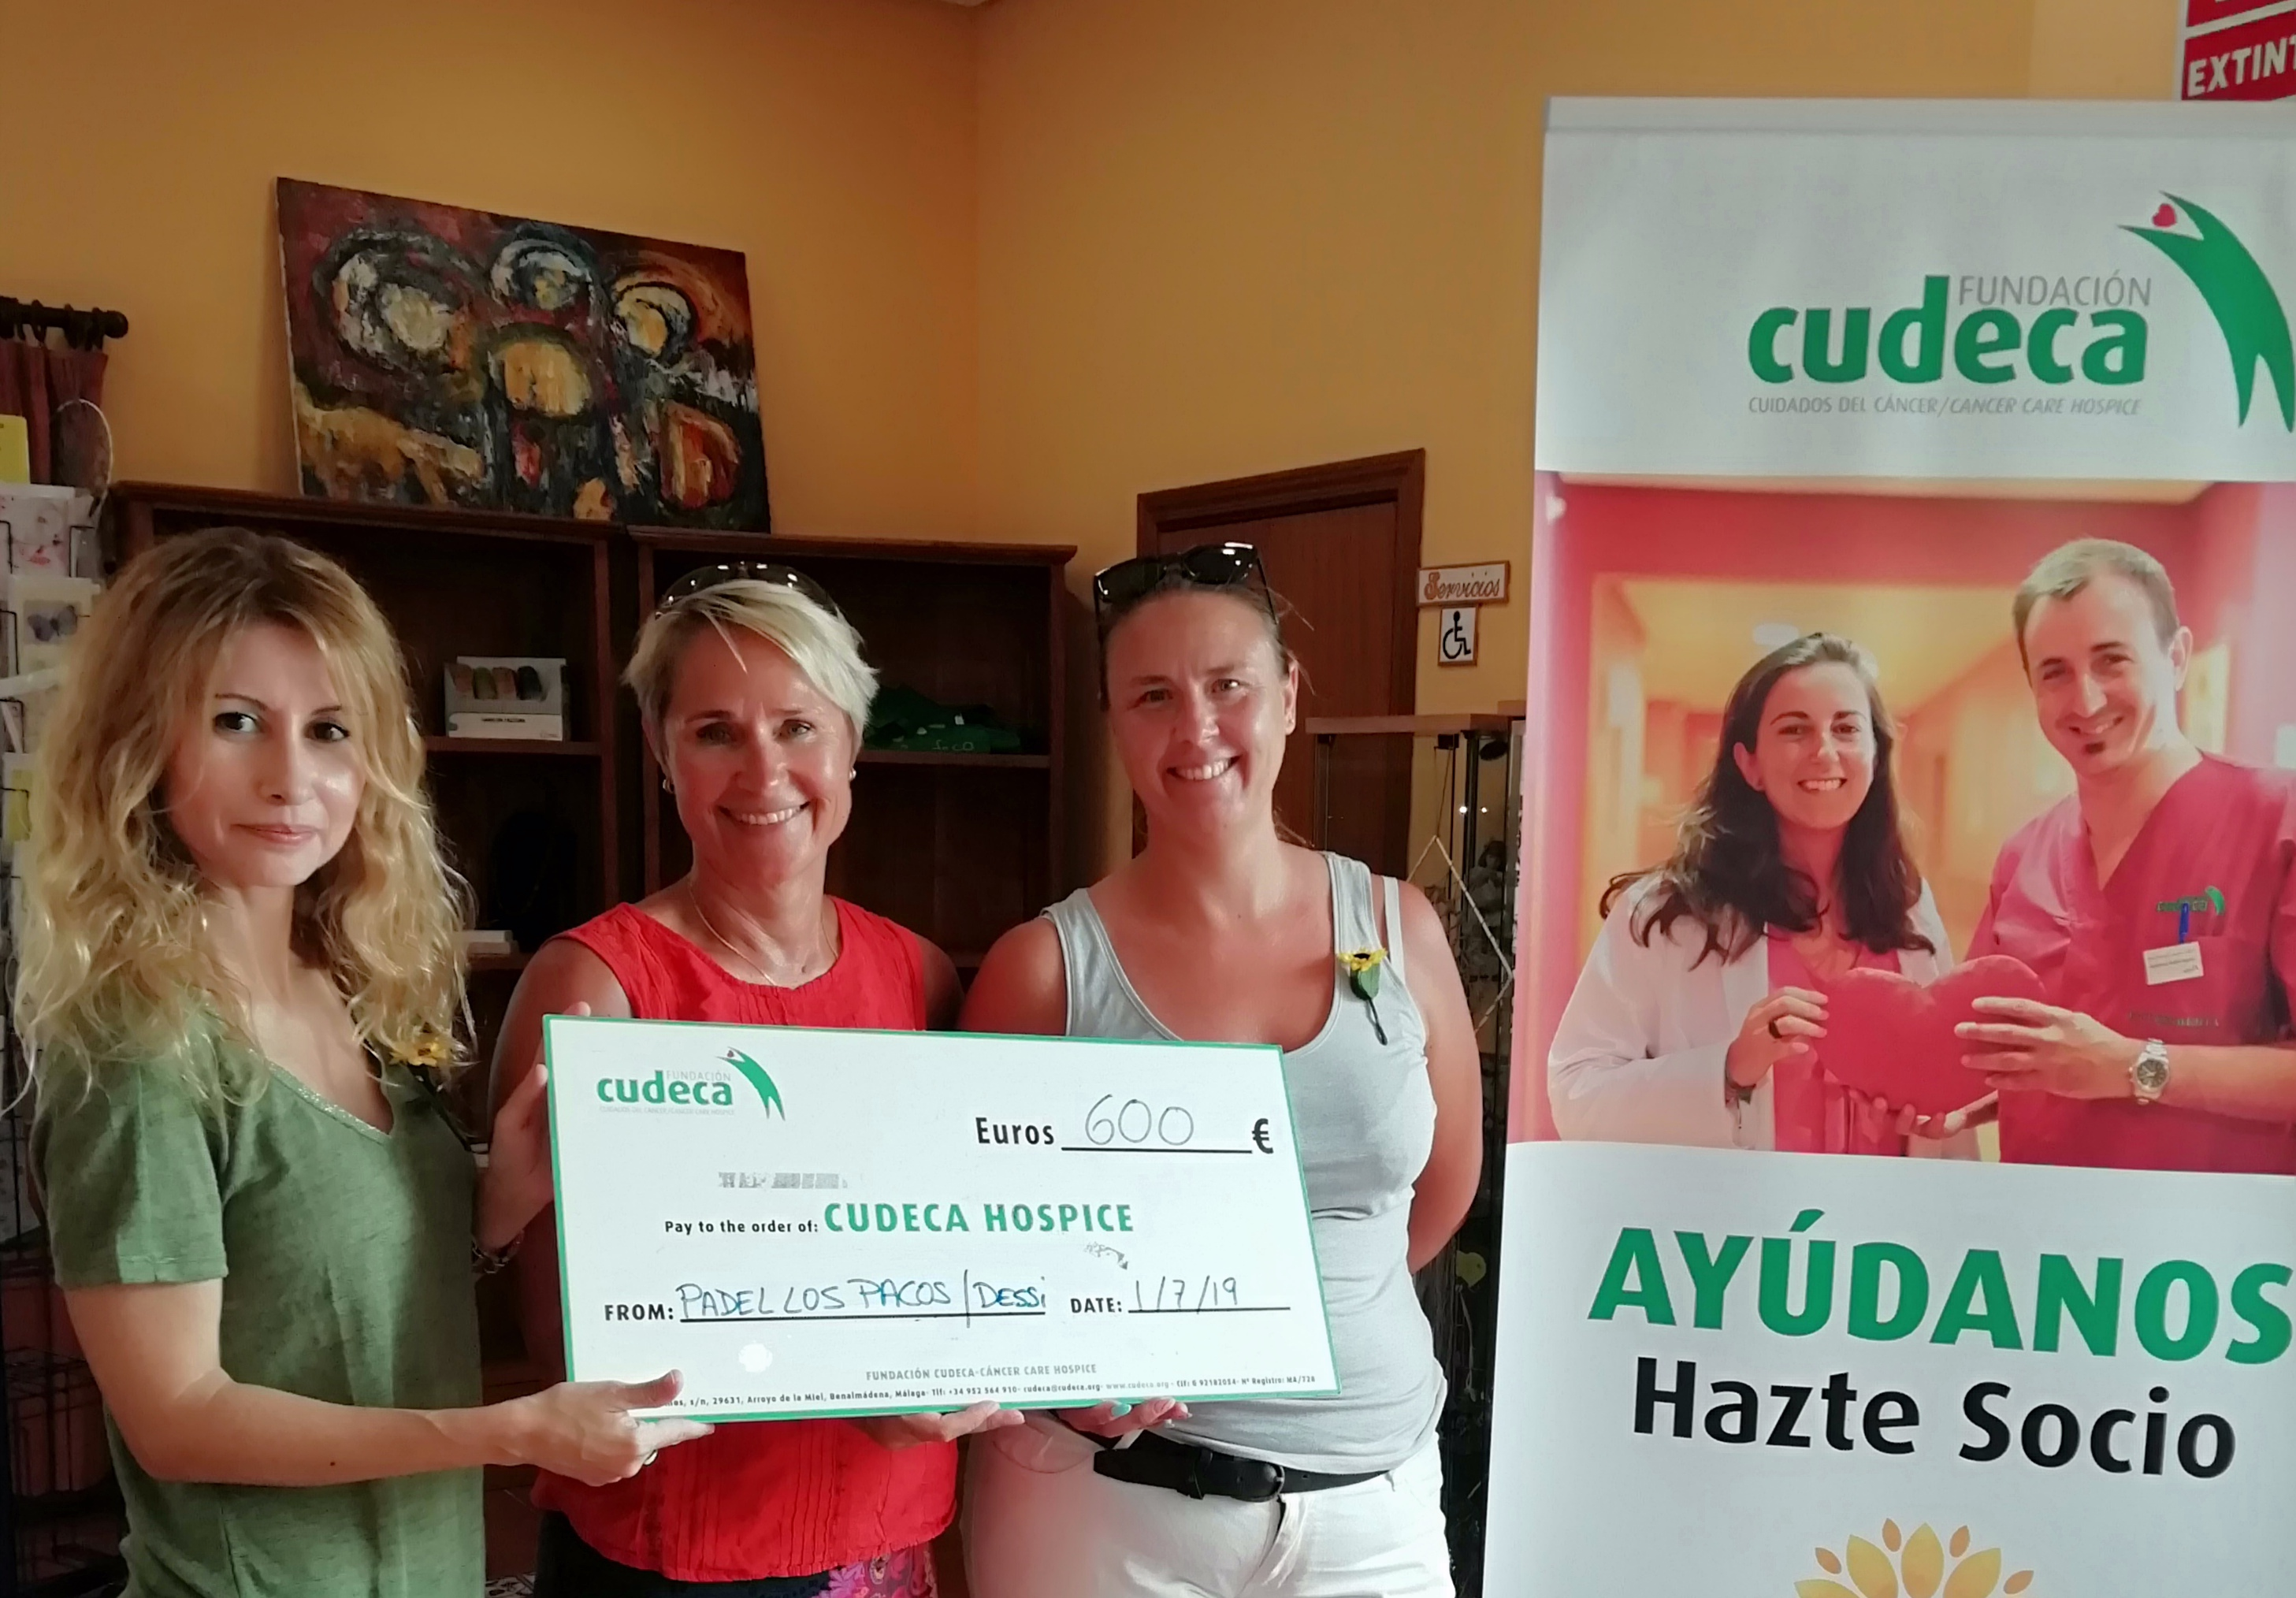 Charity Paddle Tournament in aid of CUDECA